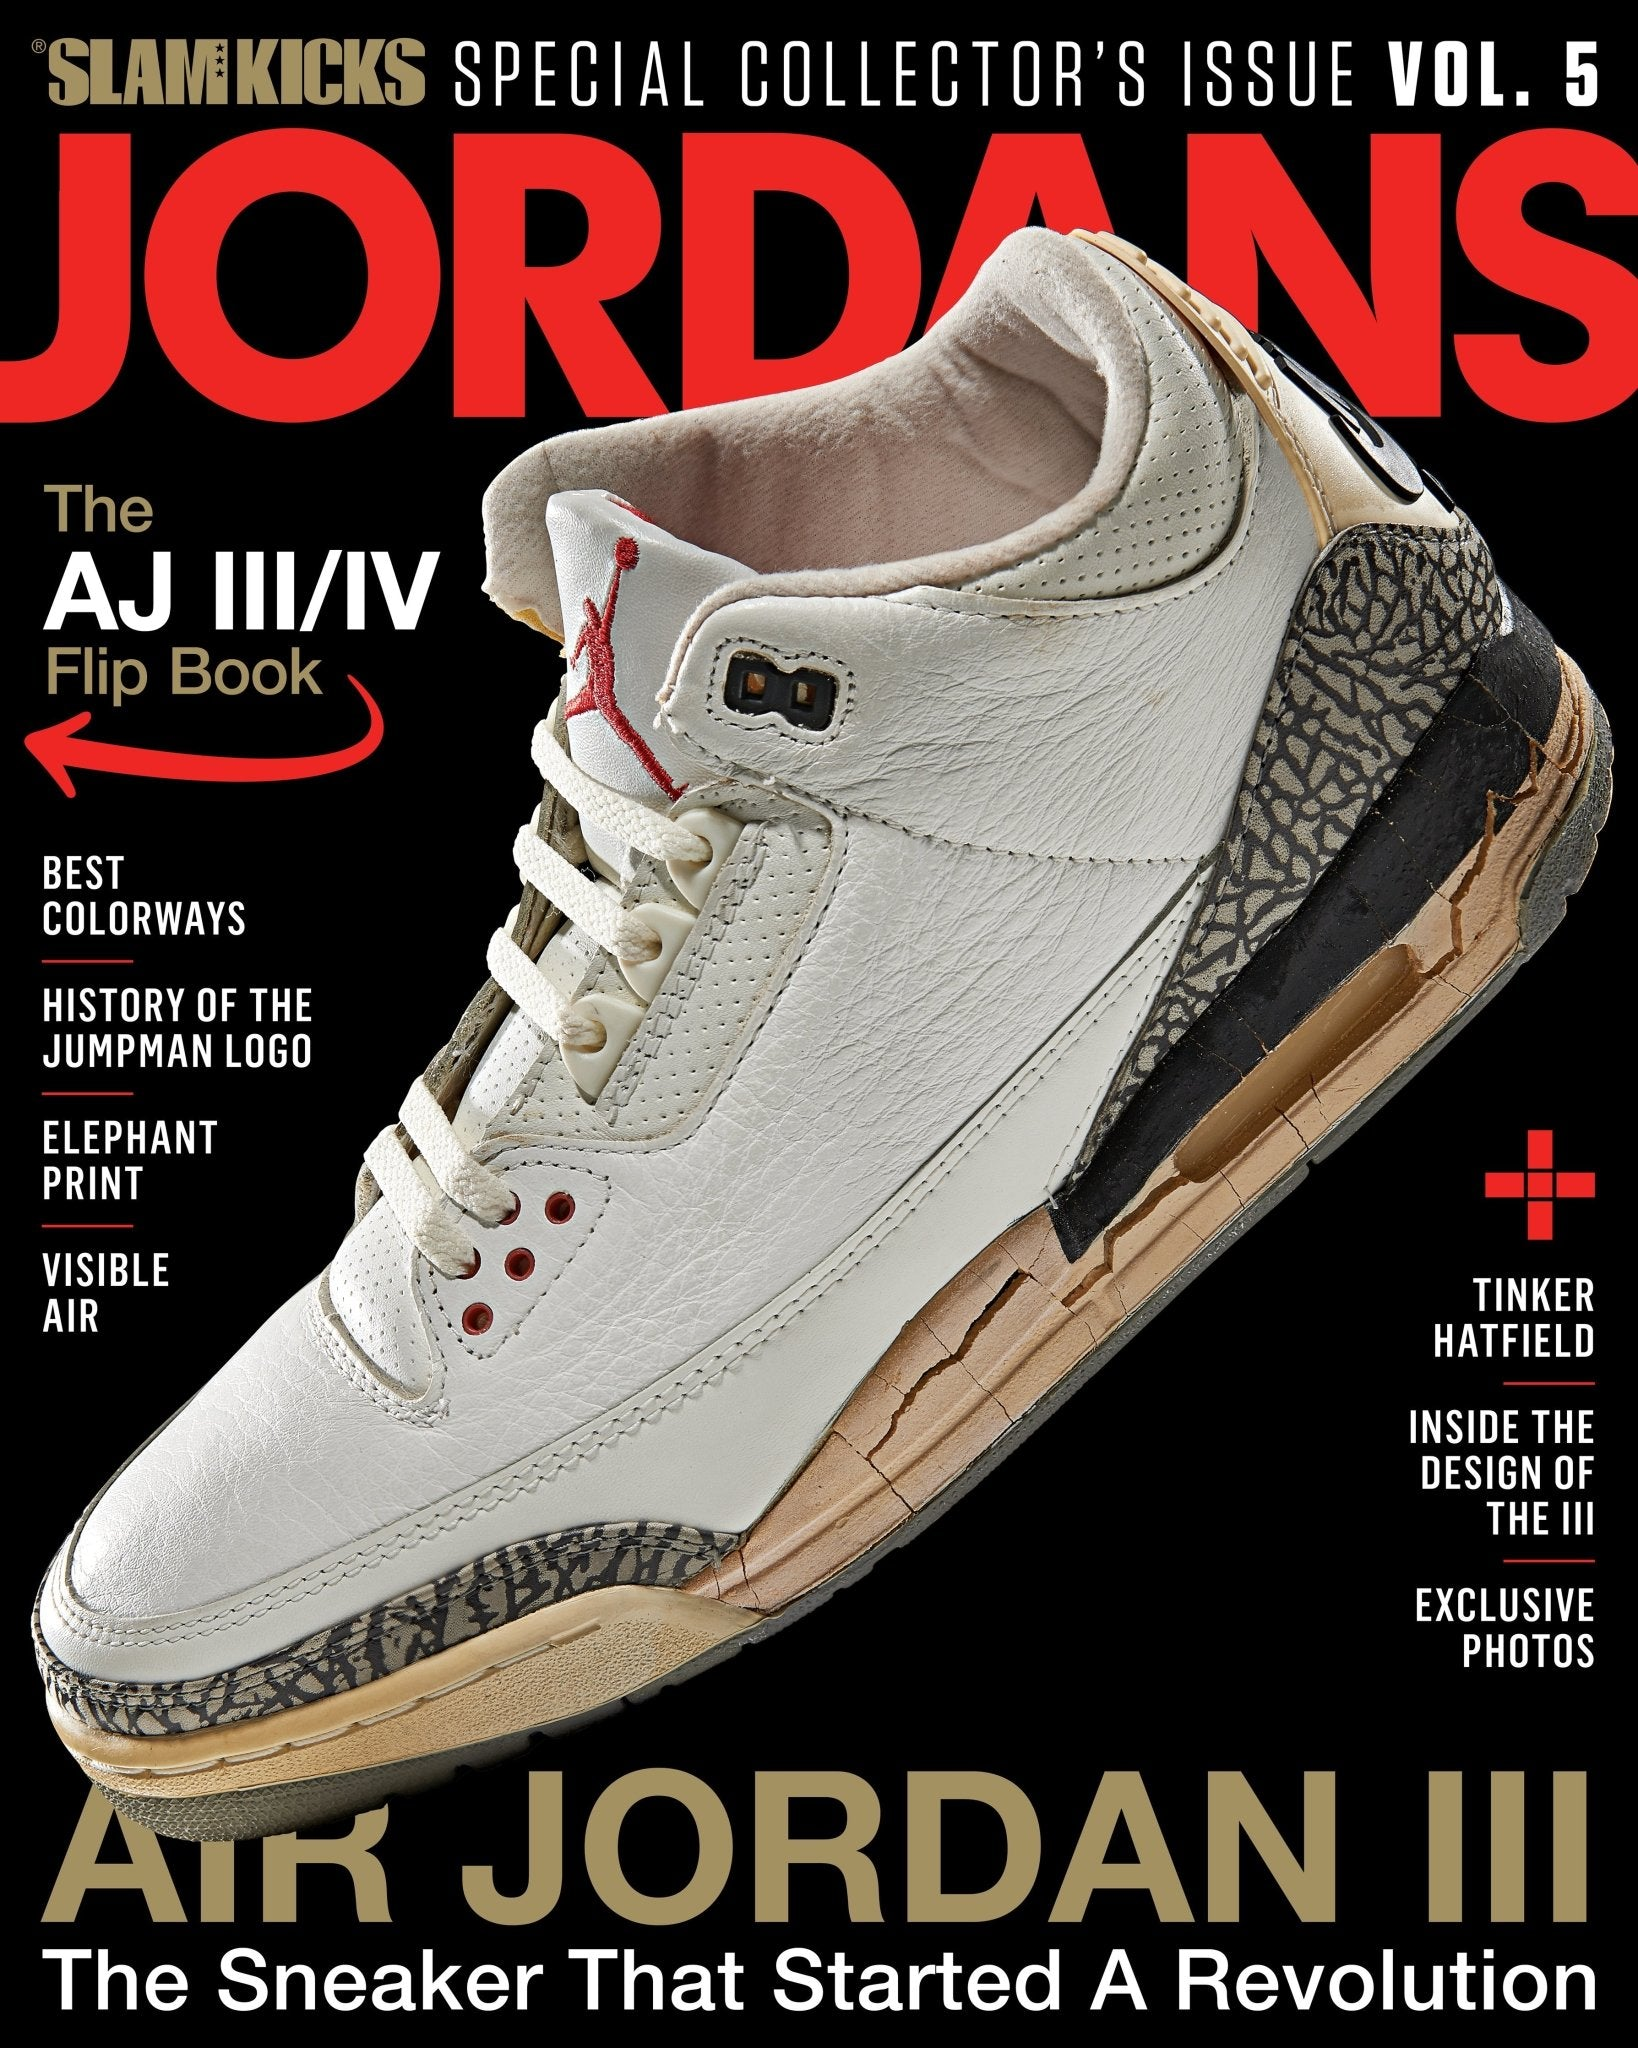 SLAM Kicks: Jordans Vol 6 Concords & Jordans Vol 5 (Bundle) - SLAM